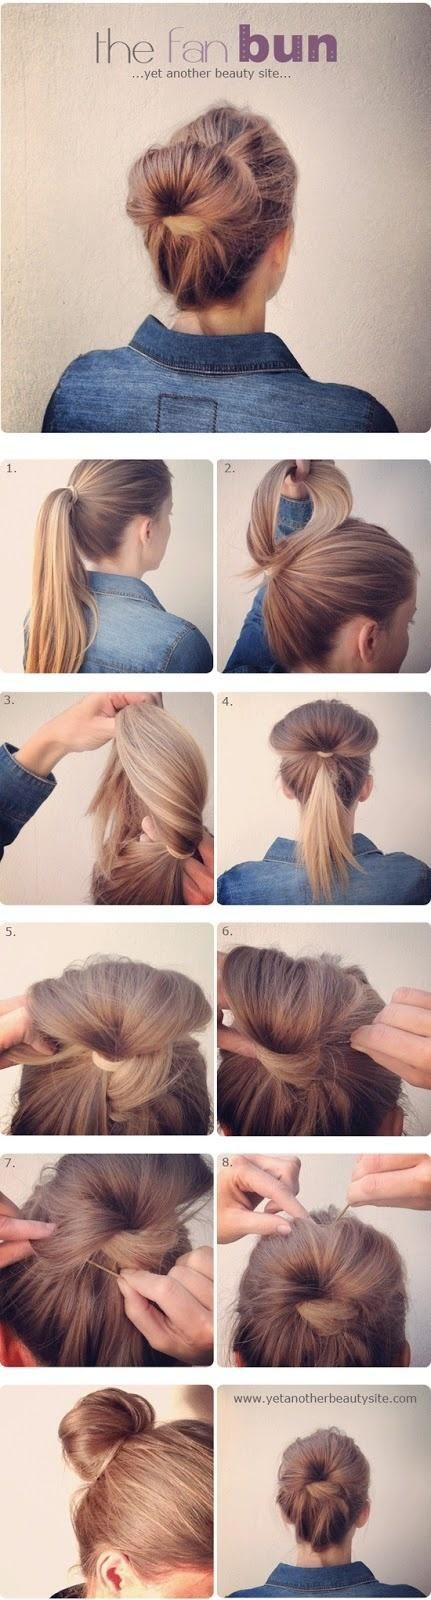 Love the website. Lots of different DIY hair styles. ...........click here to find out more http://kok.googydog.com